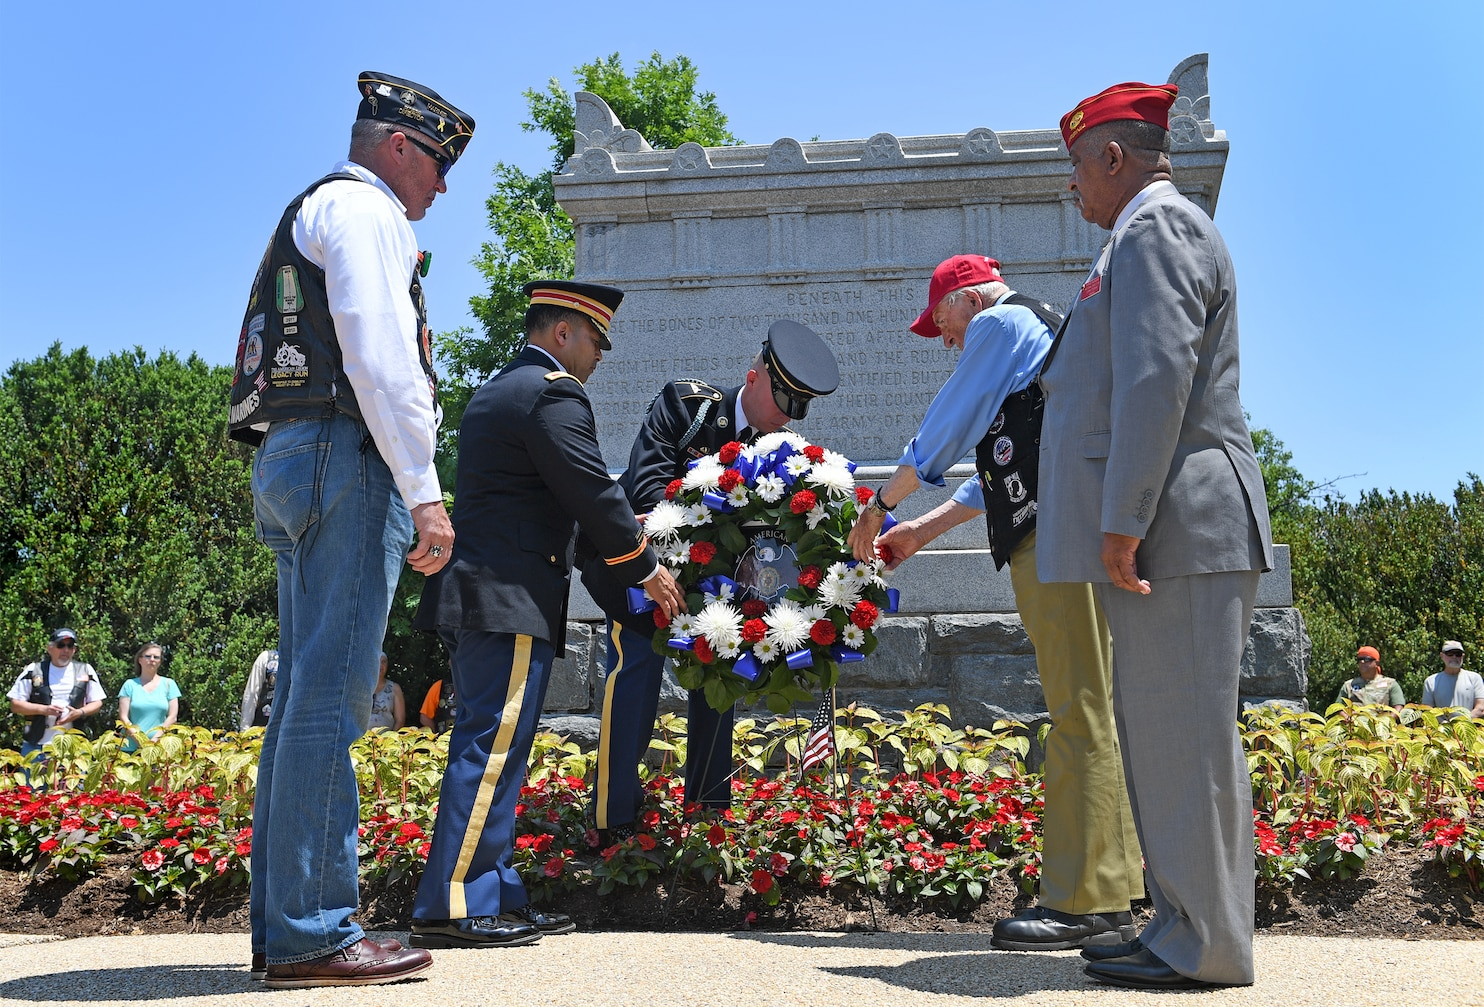 Why Memorial Day Is Different From Veterans Day